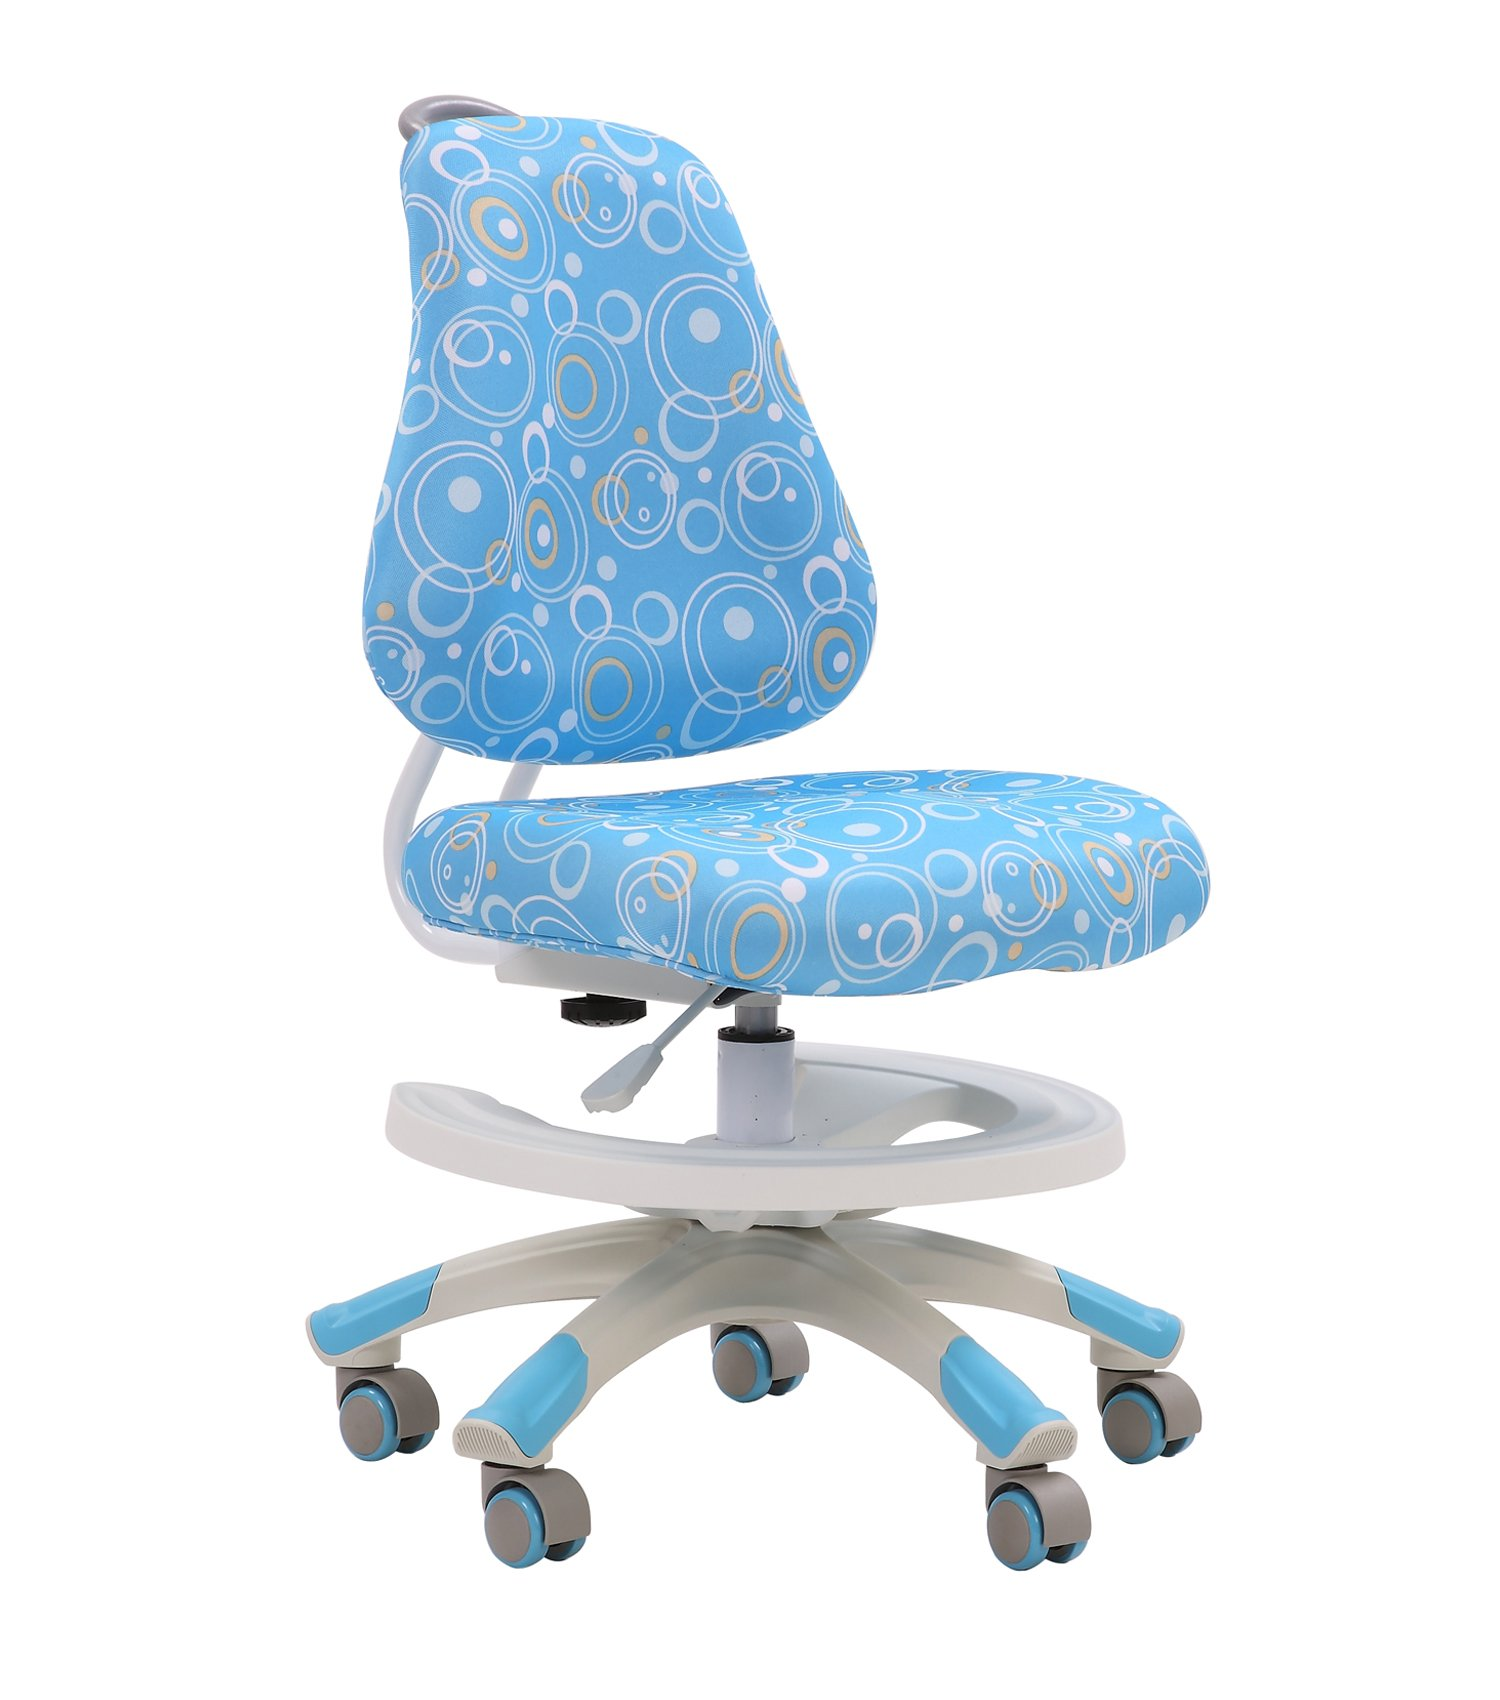 Chirldren Desk Chair, Big Baby Height Control Adjustable Seat Slideable Study Seats Petite Size Adults Office Pulley Chairs, Blue